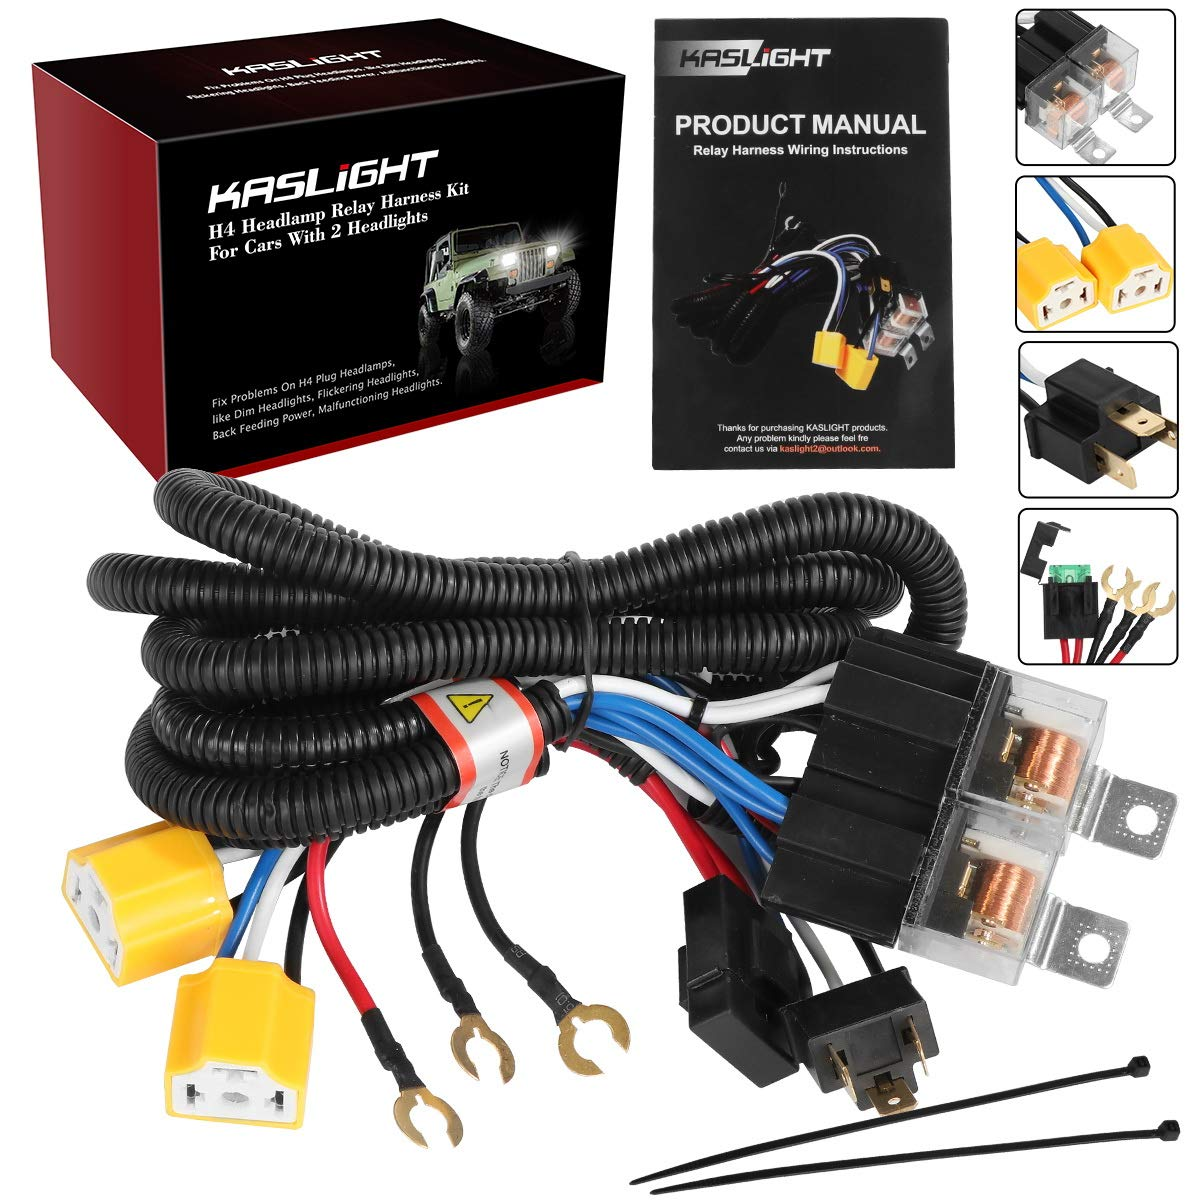 Pleasing Amazon Com 1Set 2 Headlight Harness H4 Headlight Relay Harness Wiring Digital Resources Bemuashebarightsorg